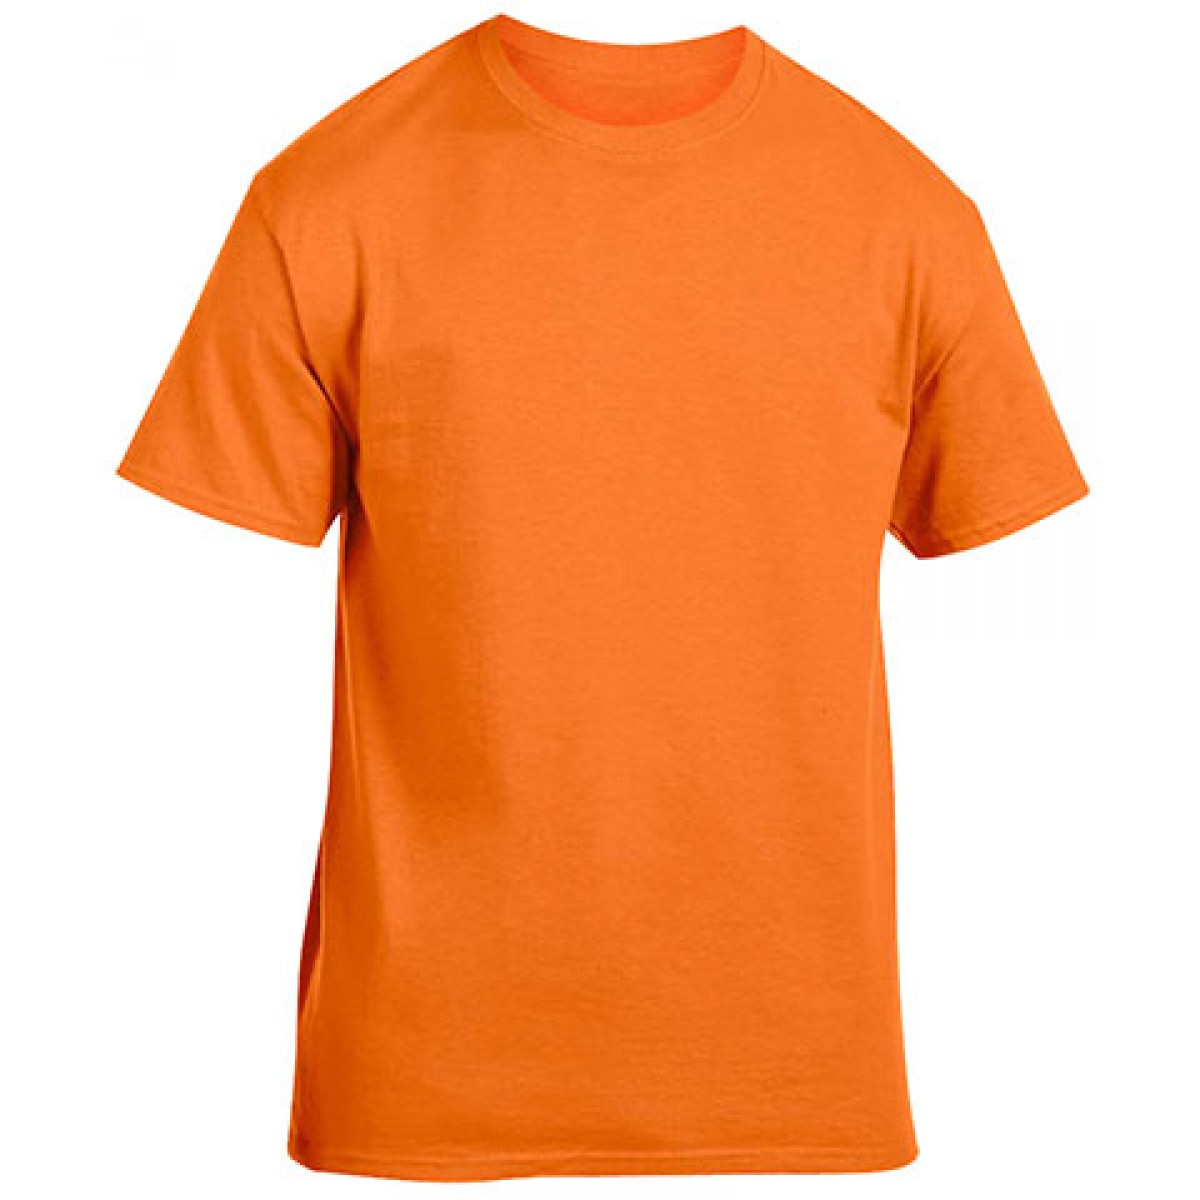 Heavy Cotton Activewear T-Shirt-Safety Orange-3XL